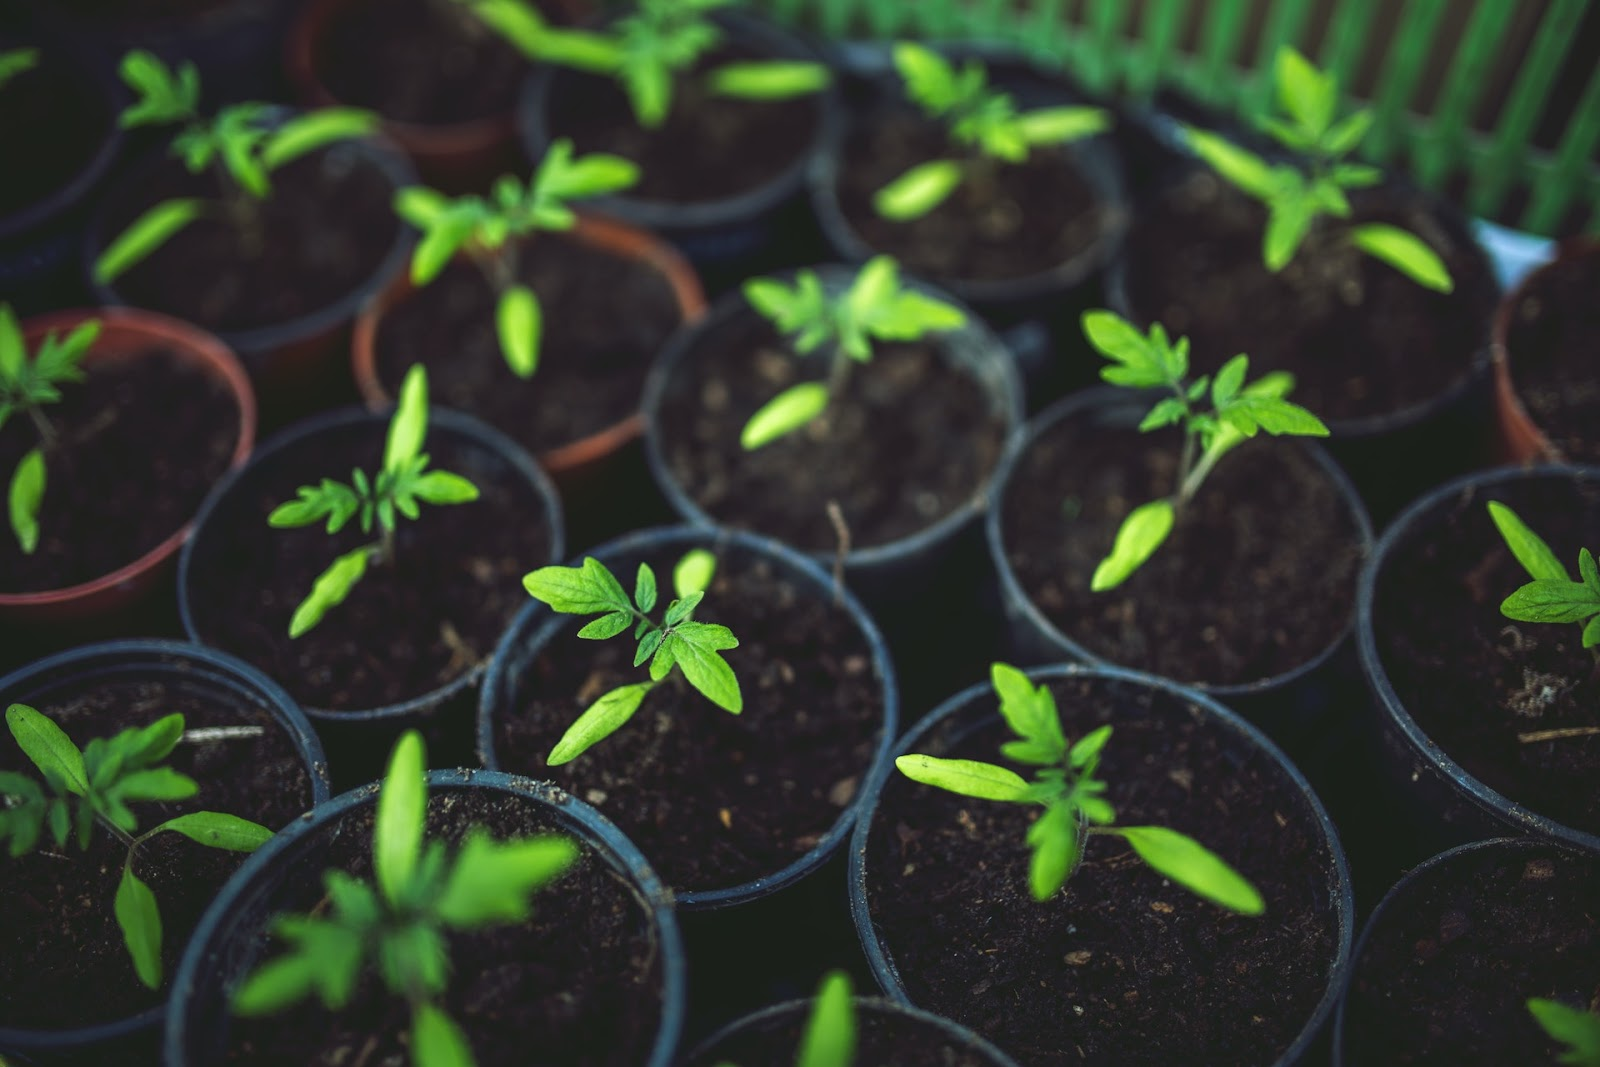 Small green seedlings growing in plant pots.